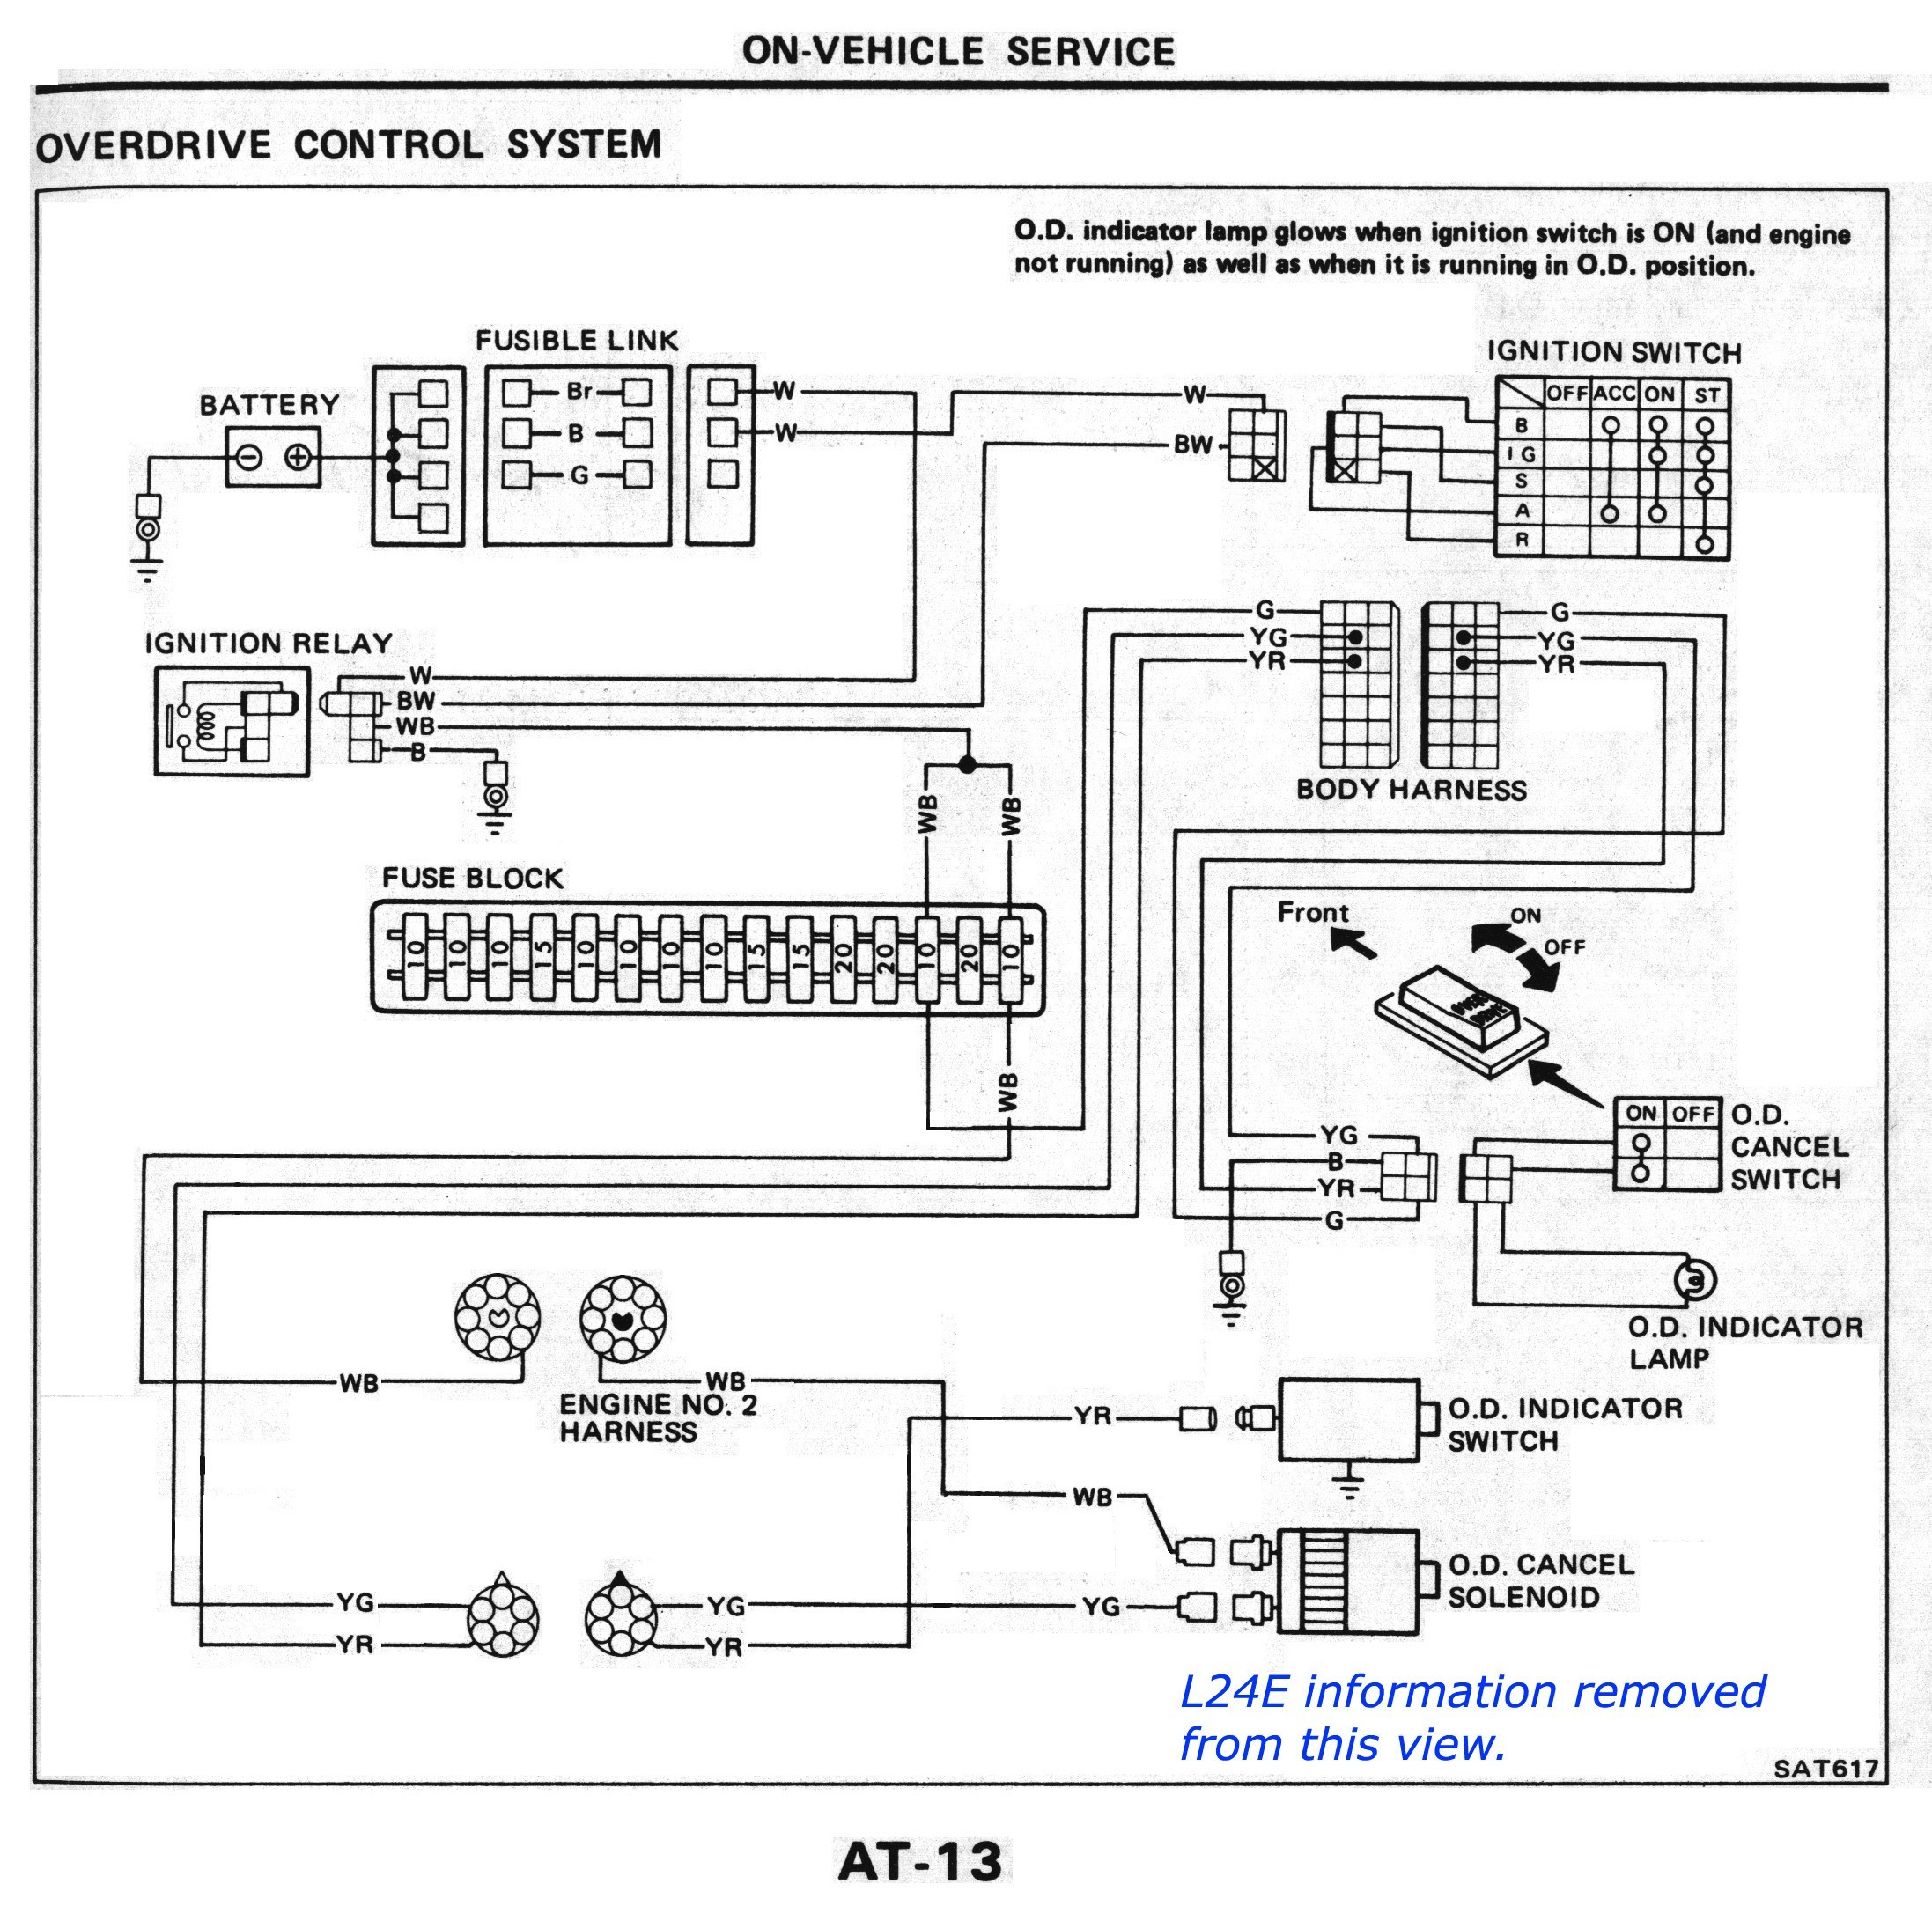 Mustang Starter Solenoid Wiring Diagram Unique Image For Ford Relay New Inspirational Flathead Electrical